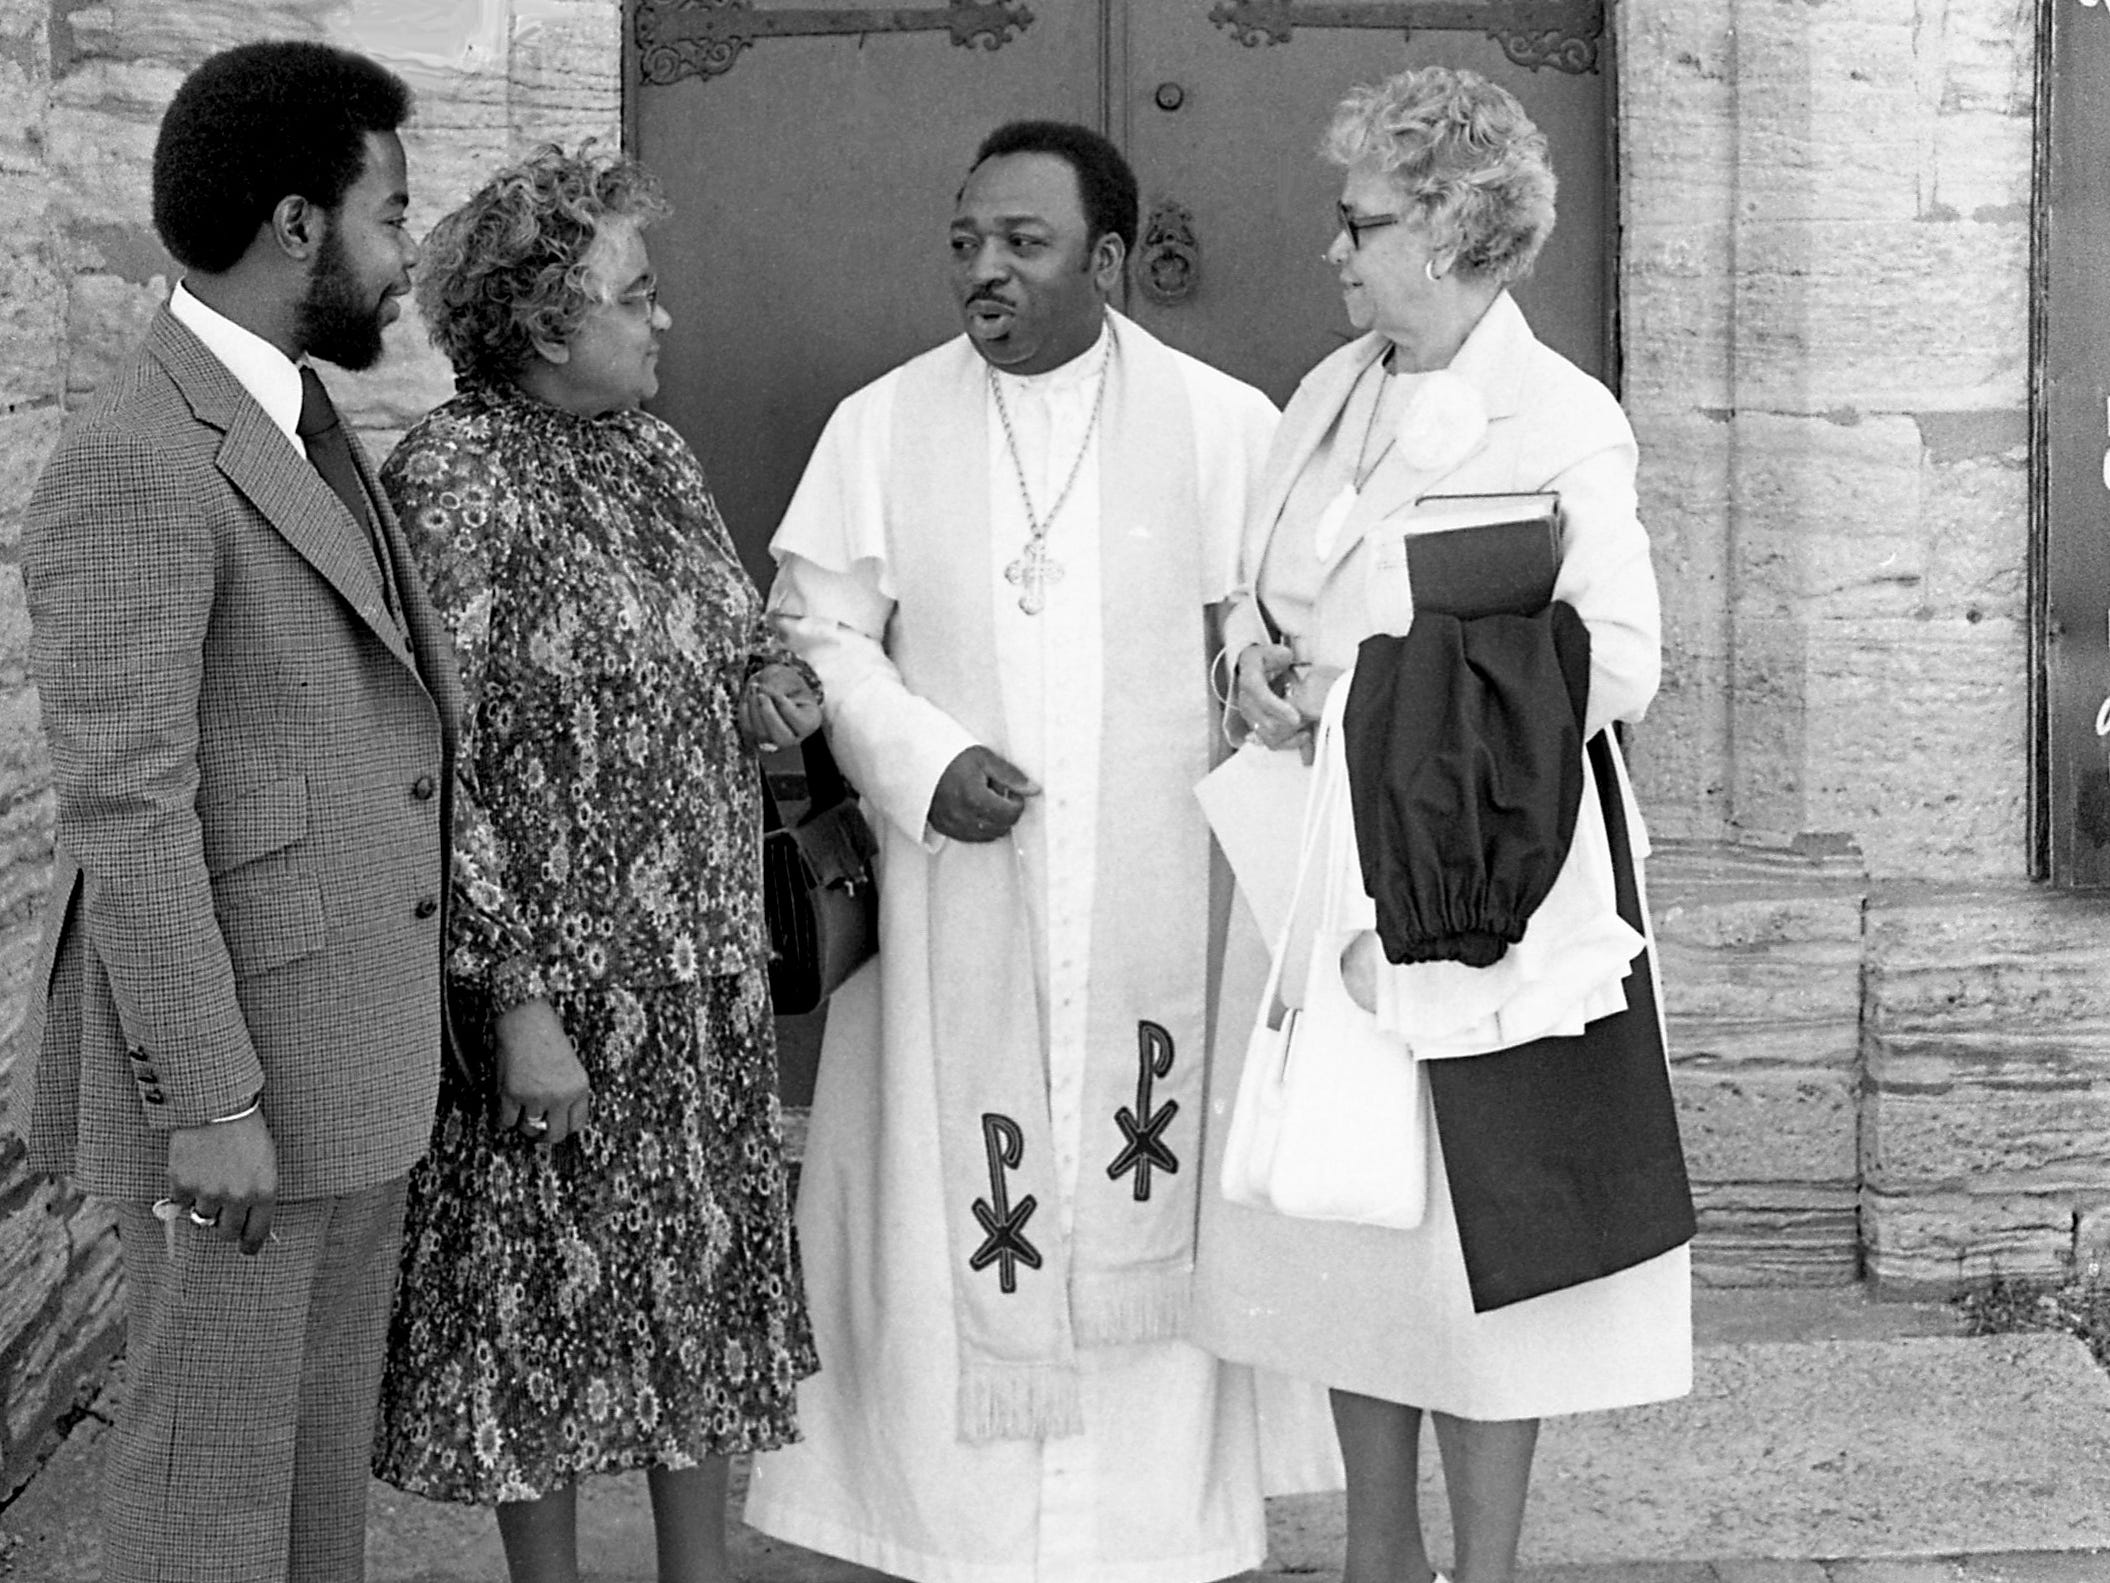 The Rev. Crayton T. Dudley, rector, second from right, shares a moment with Angus Dudley, left, Mrs. Jeanette Forrester and Mrs. Grafta M. Looby during Easter service at the Holy Trinity Episcopal Church at 615 6th Ave. S., on April 15, 1979.